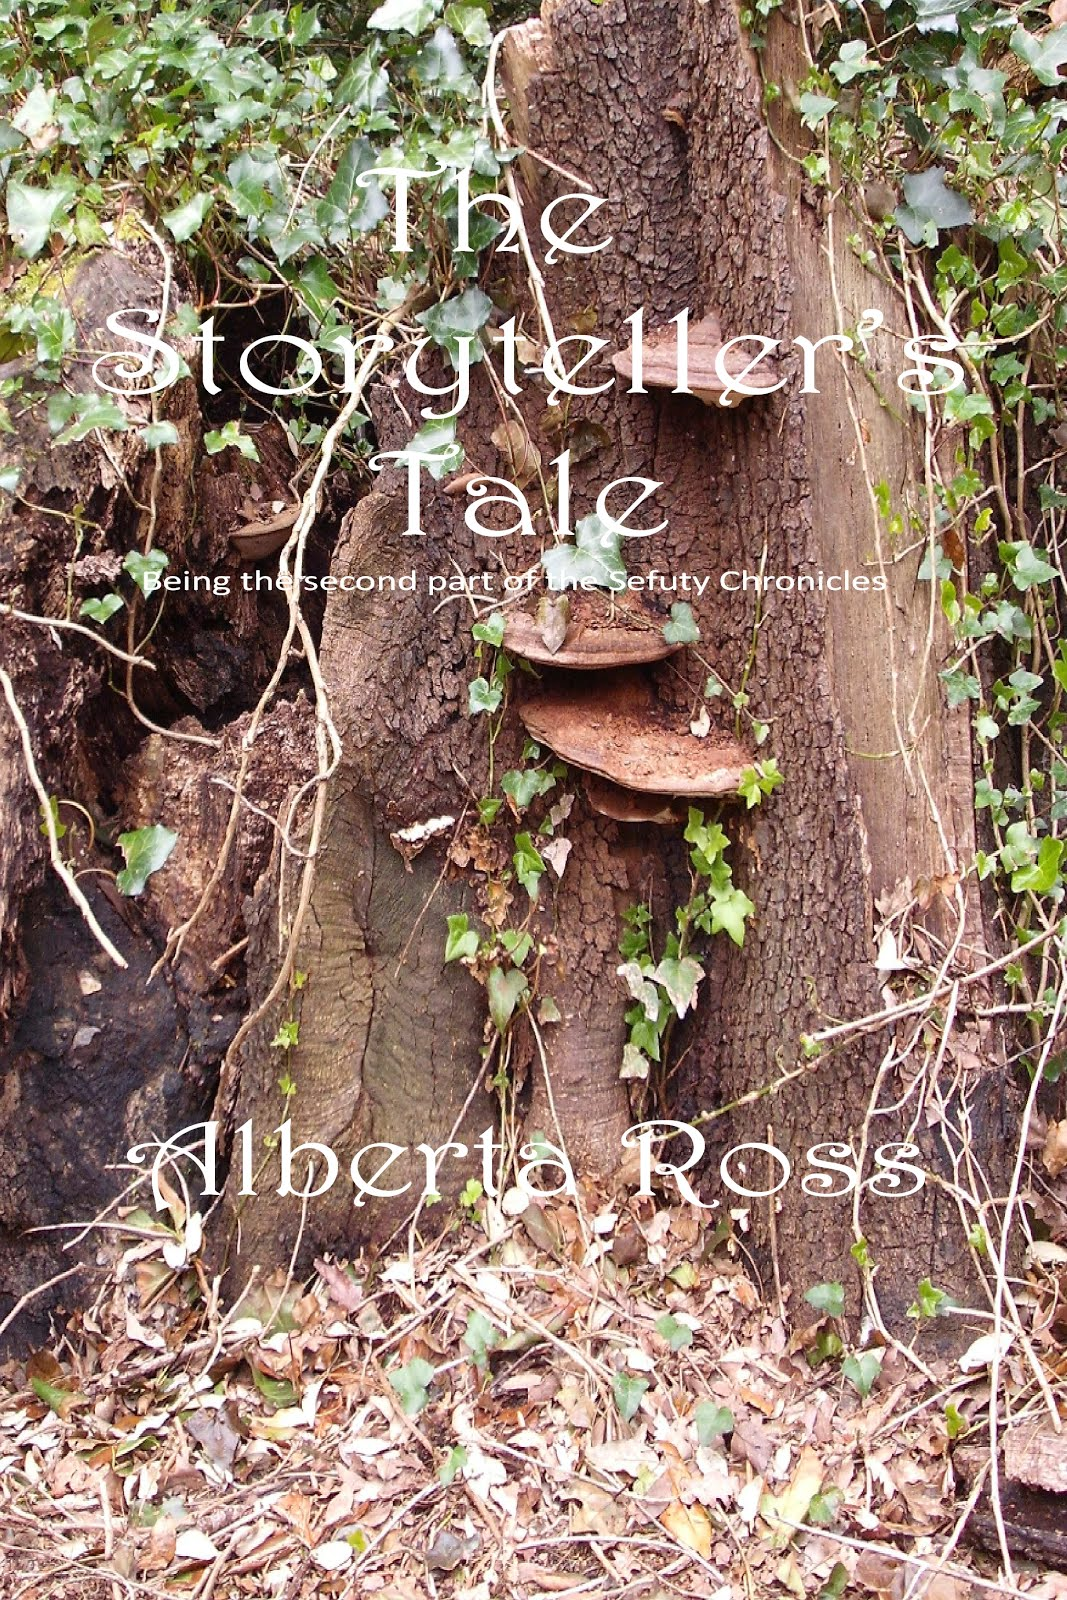 The Storyteller's Tale